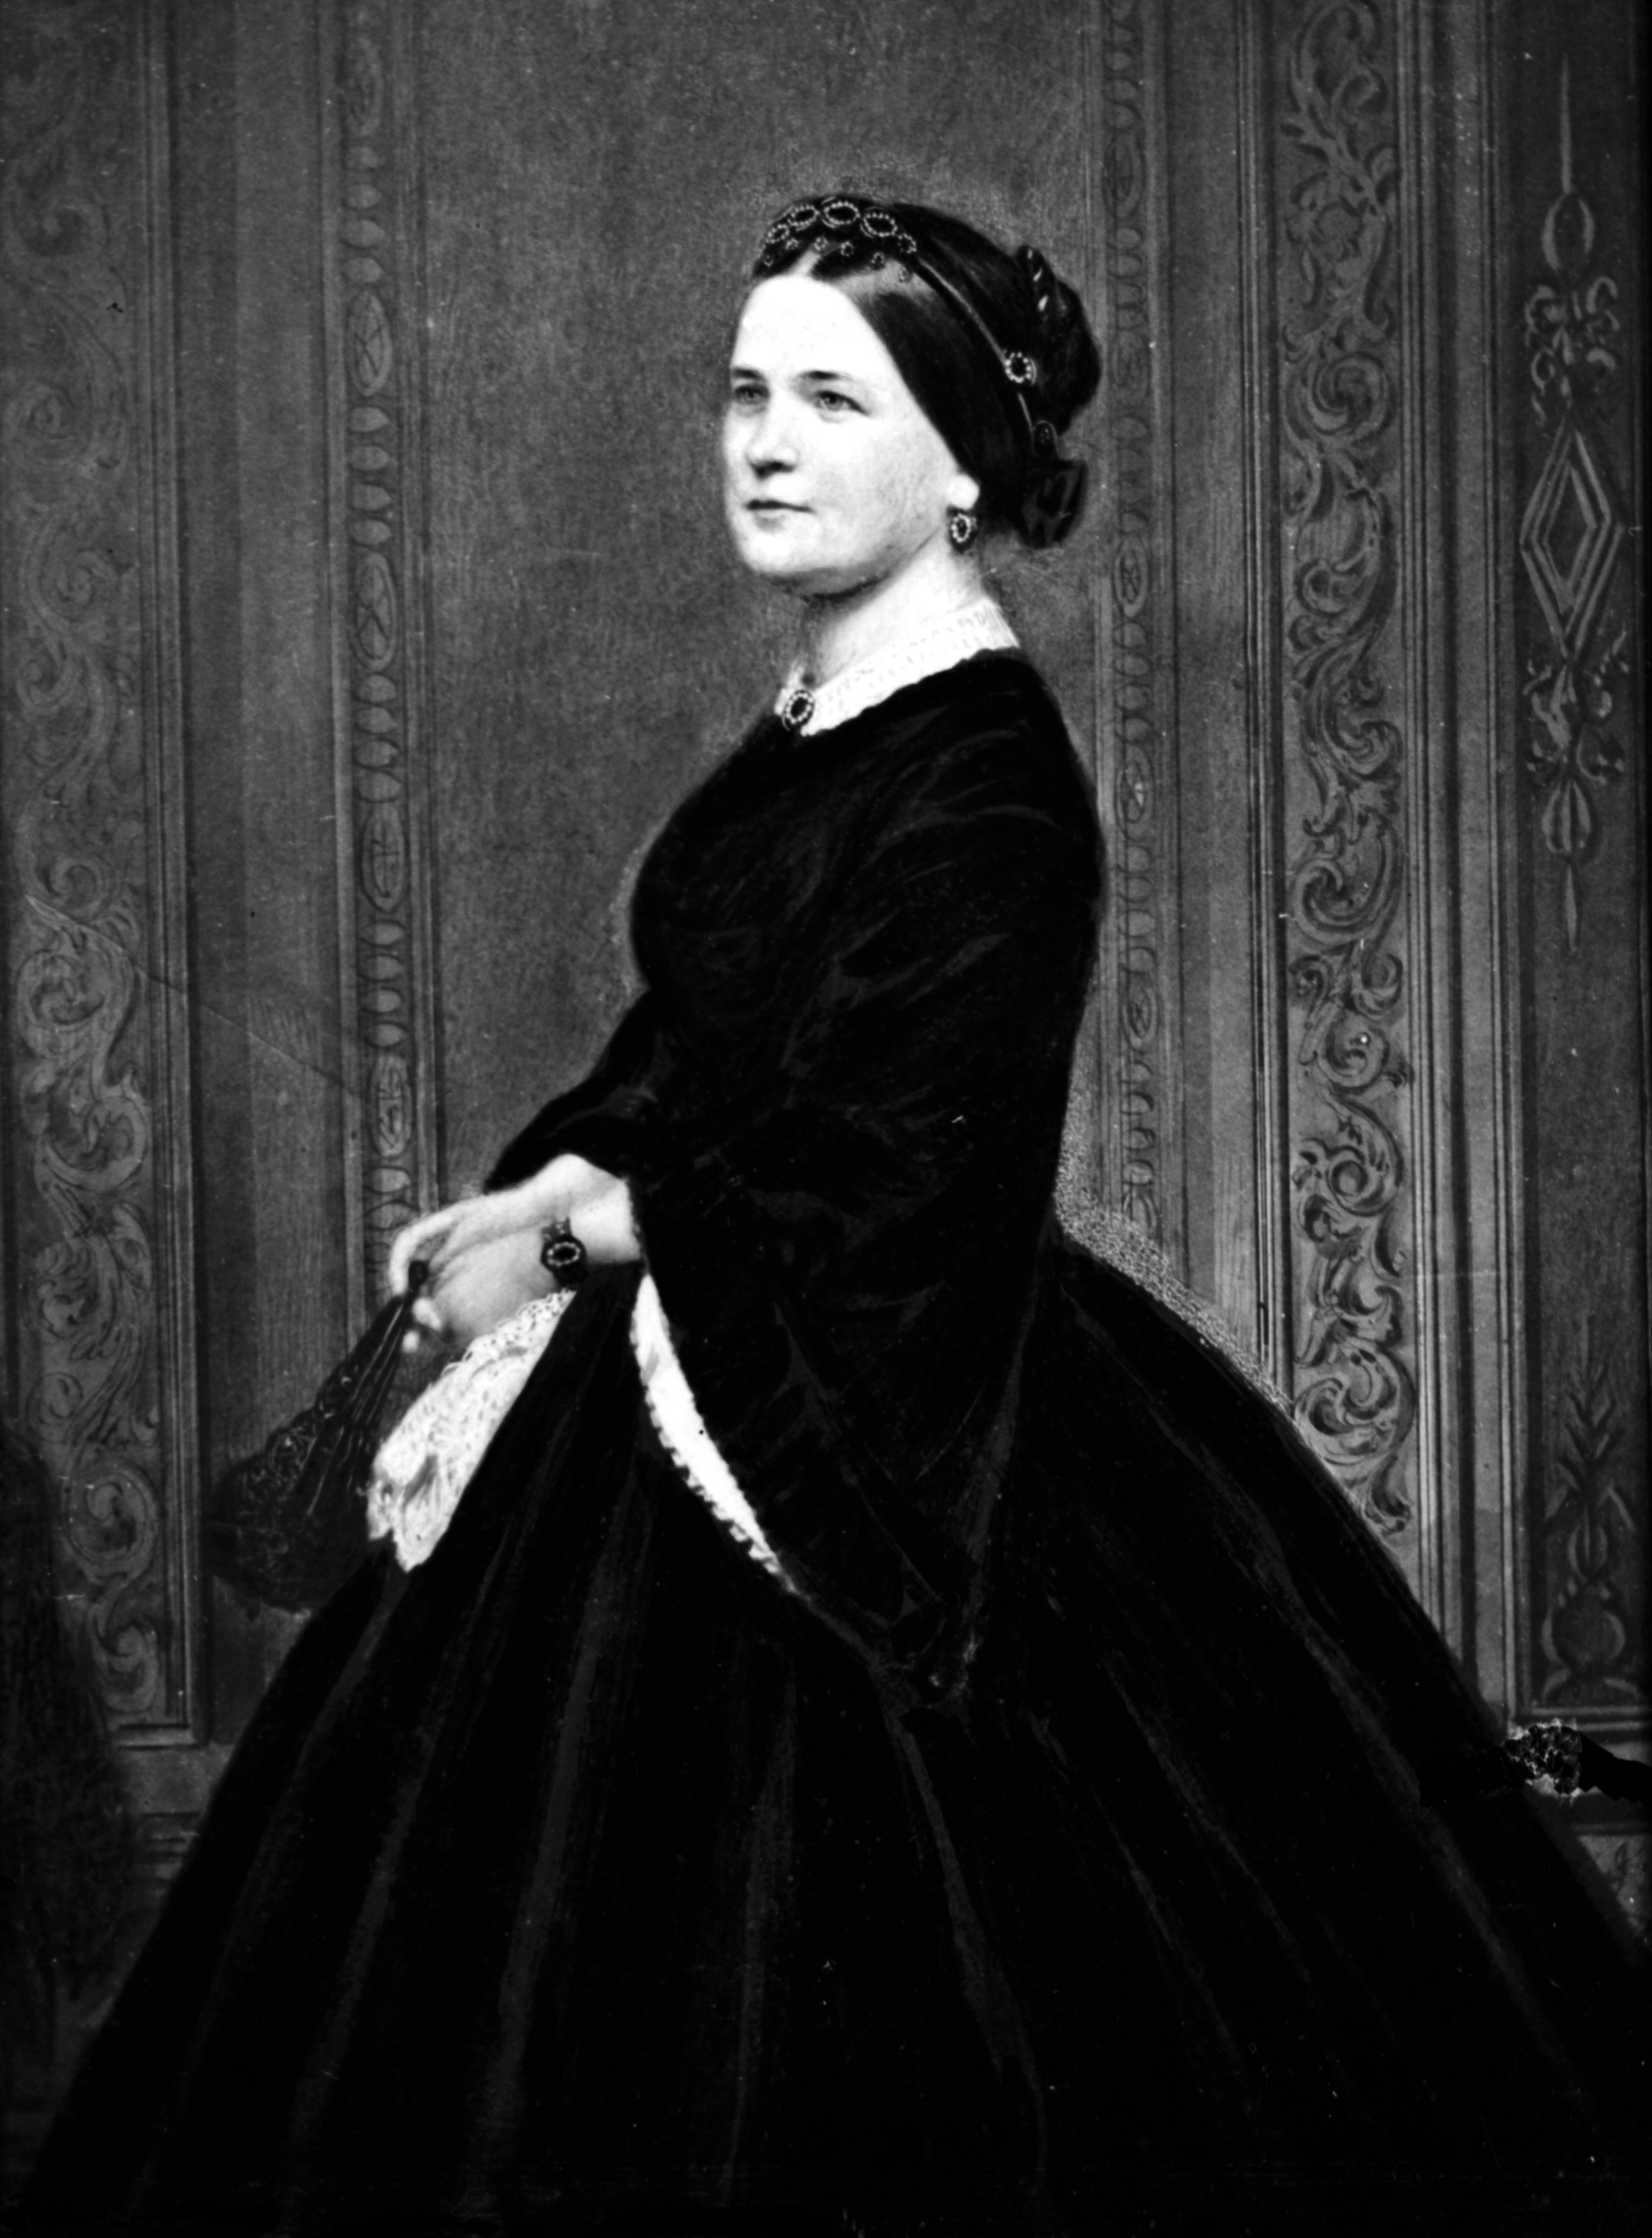 Mary Todd Lincoln May Have Had Pernicious Anemia